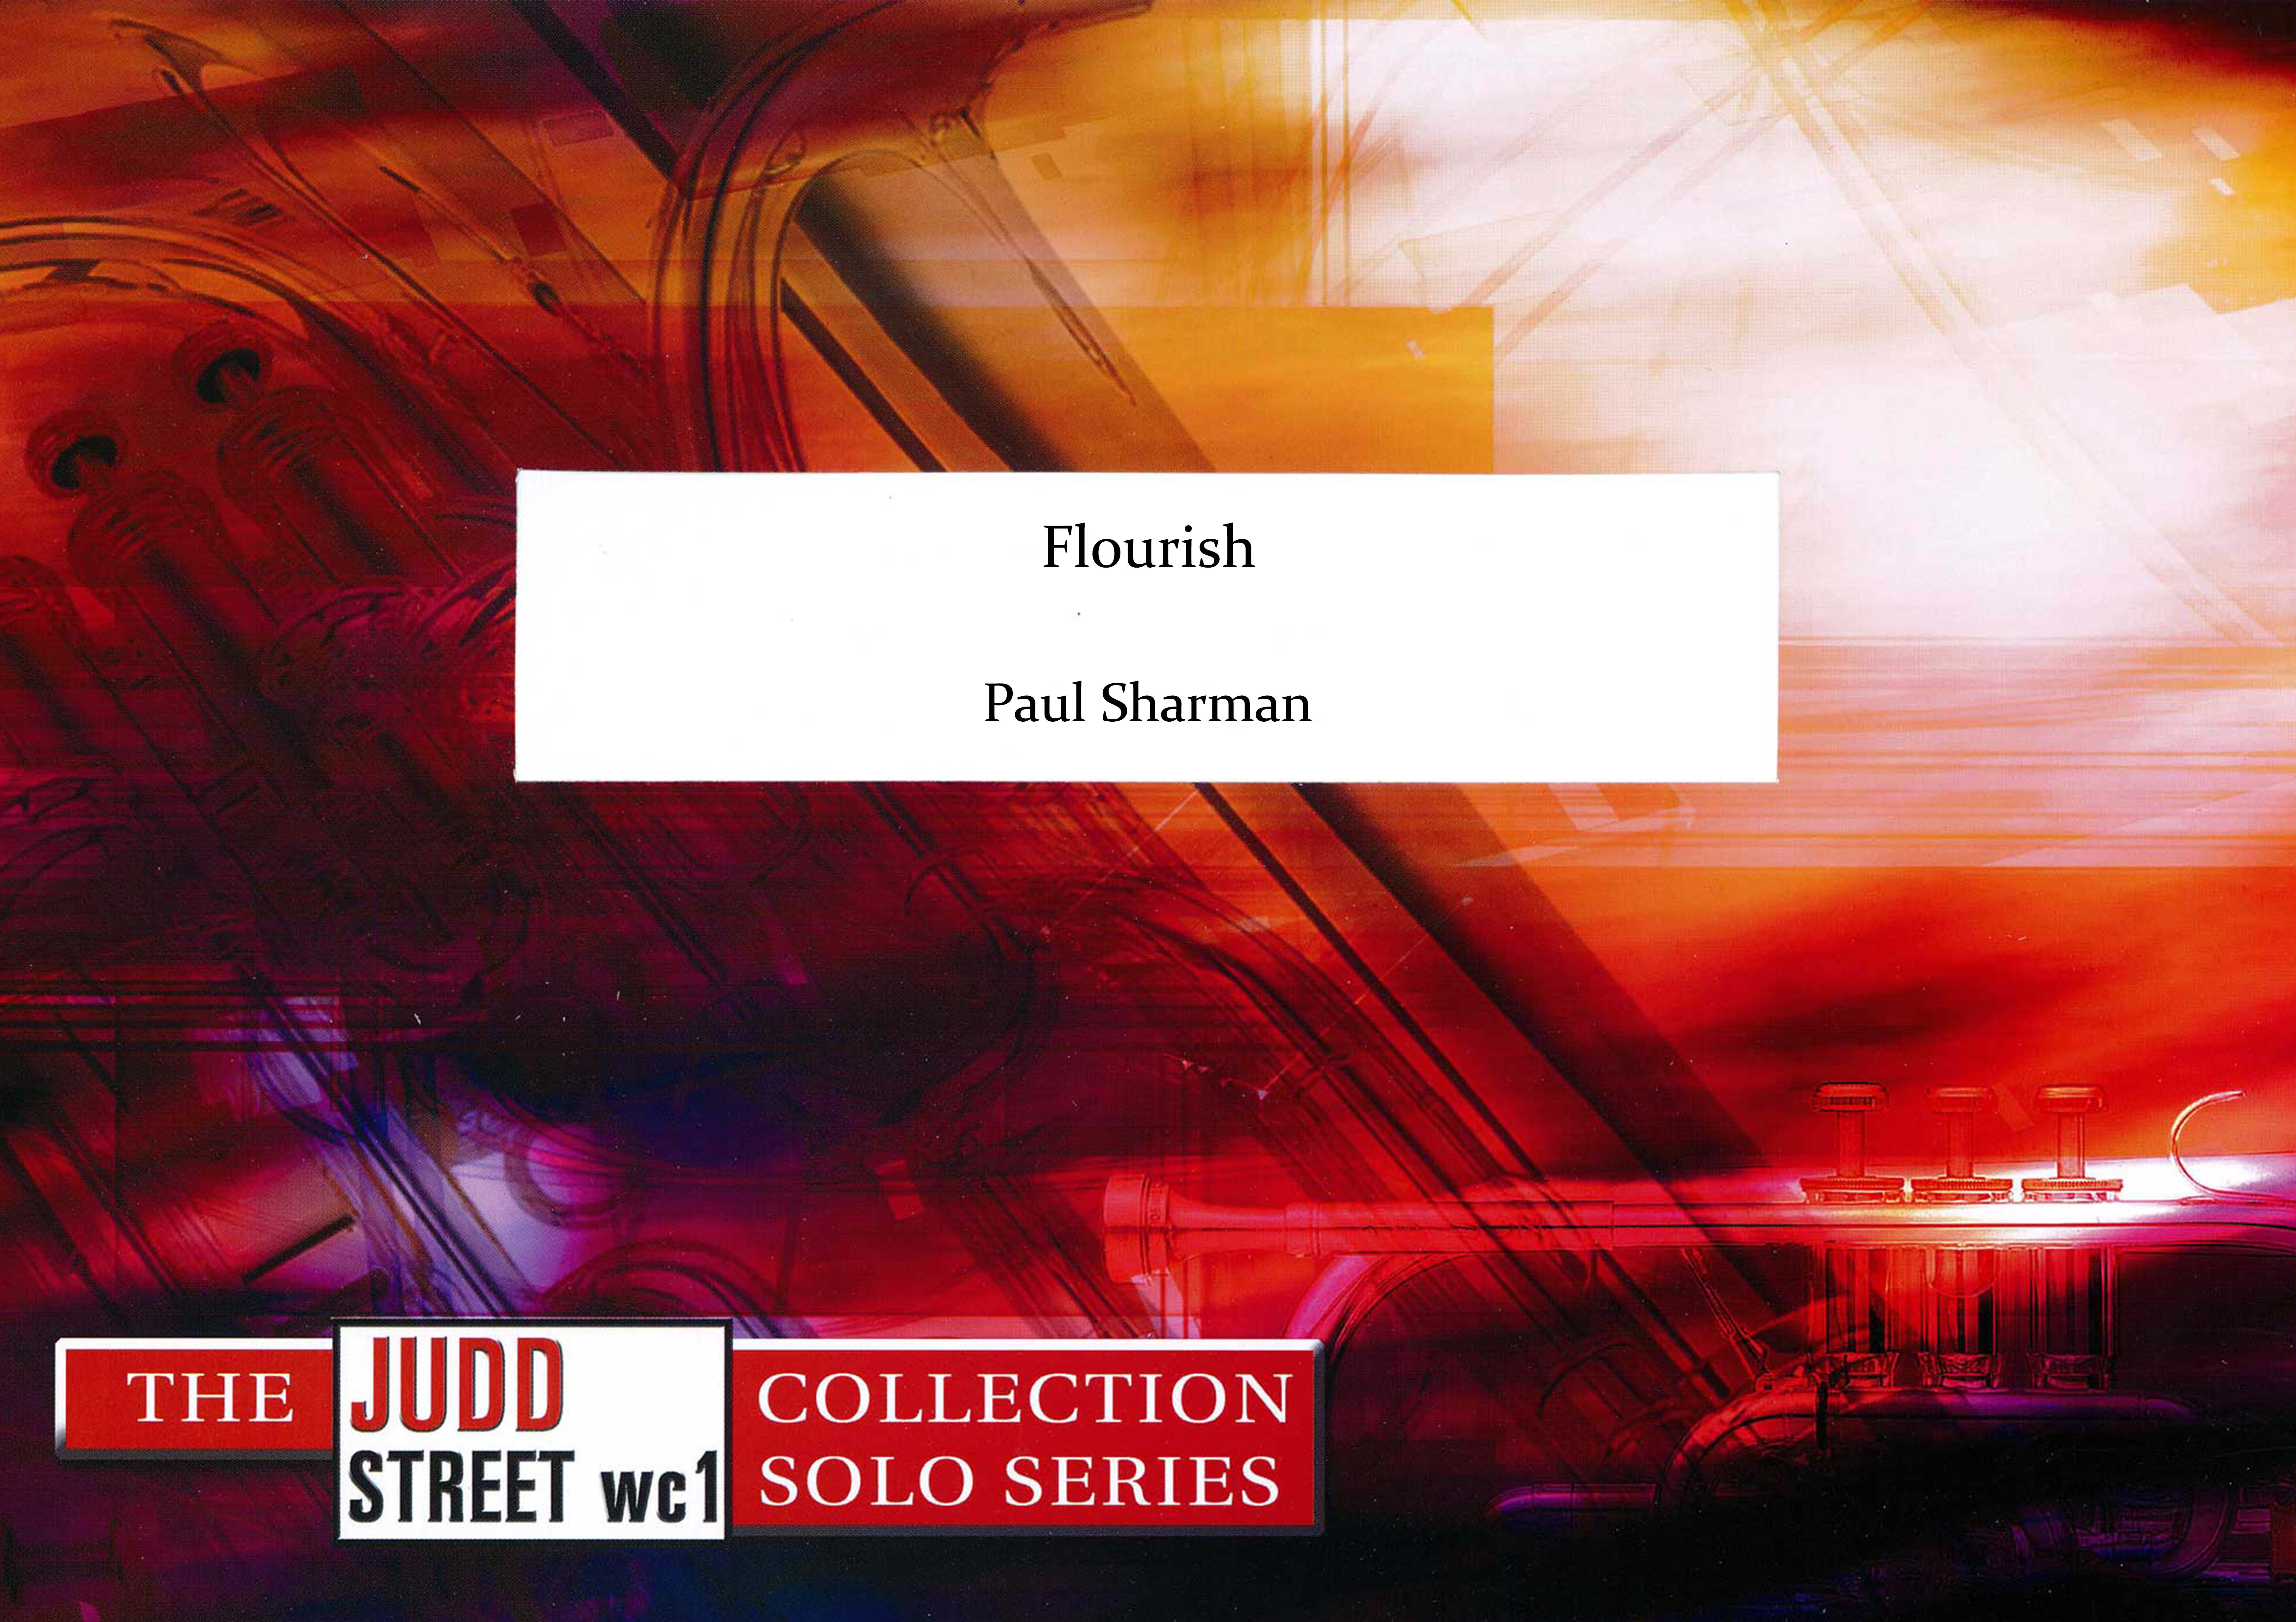 Flourish (Trumpet Solo with Brass Band - Score only)